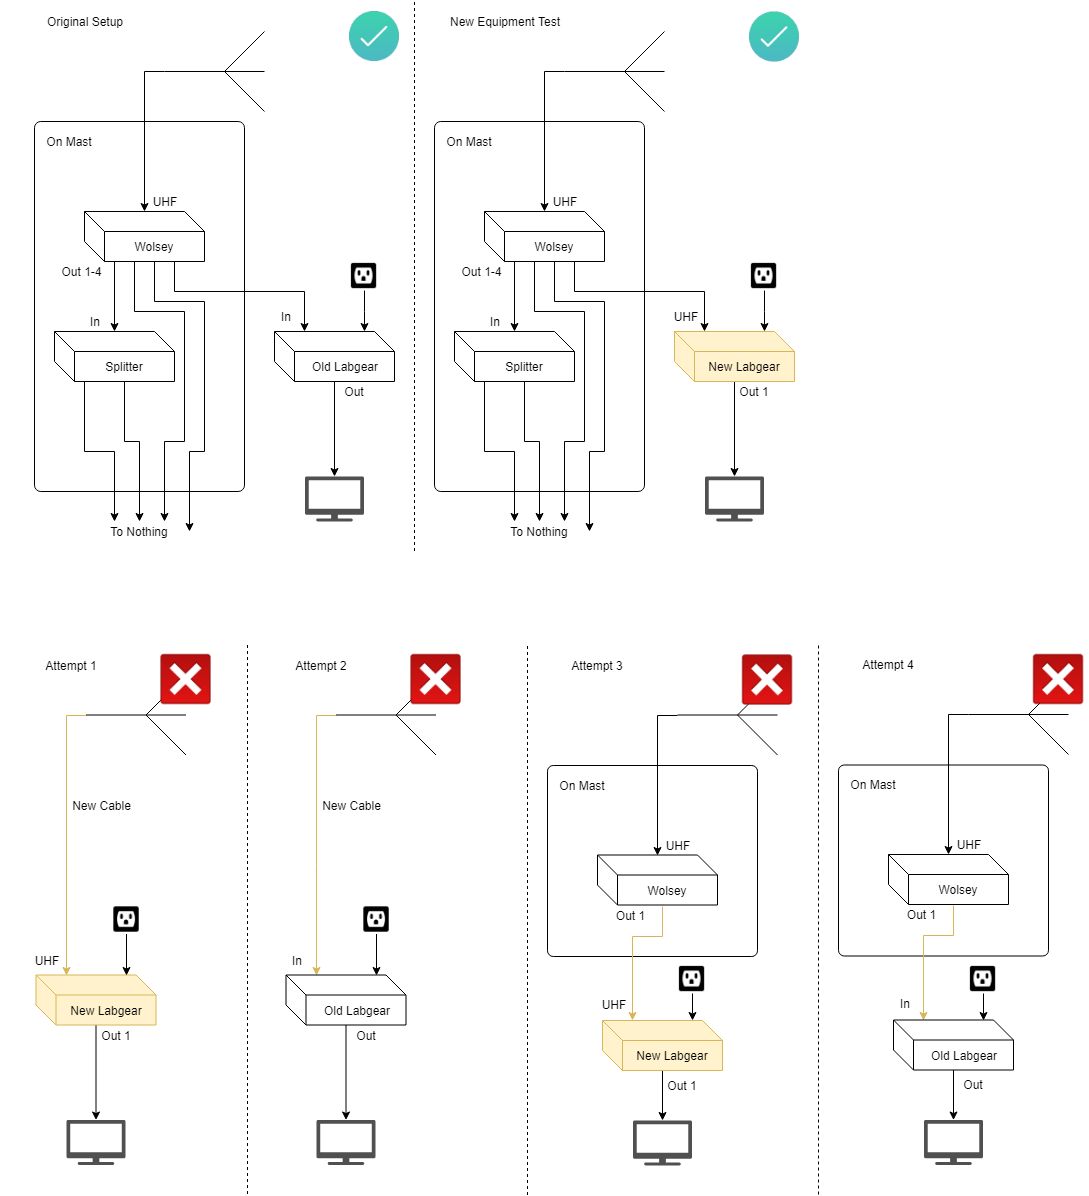 hight resolution of original and attempted setups notes about diagram